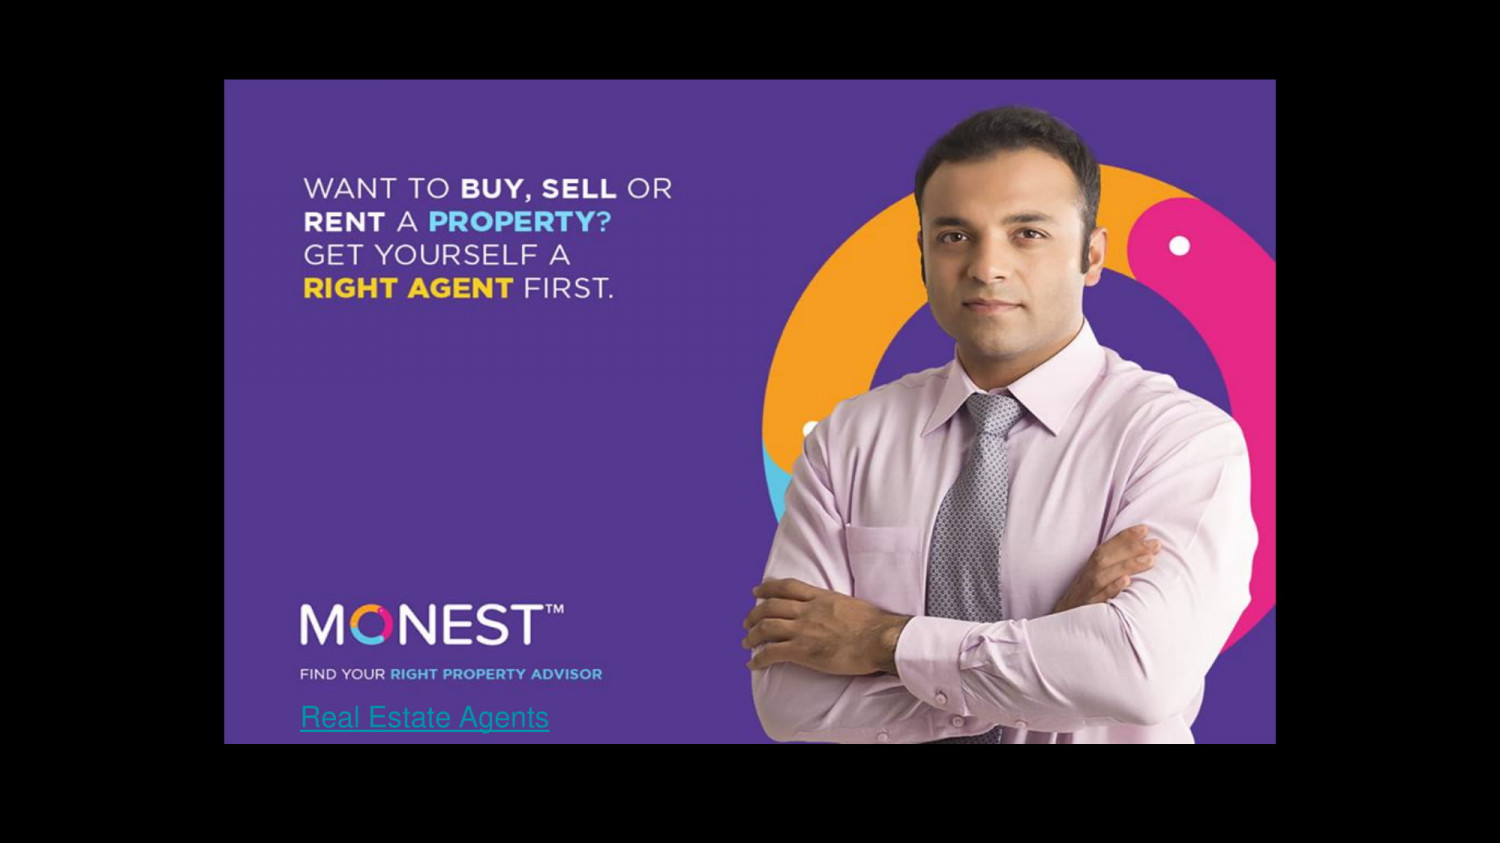 India's Largest Real Estate Agents Network is now launching in Kolkata Infographic